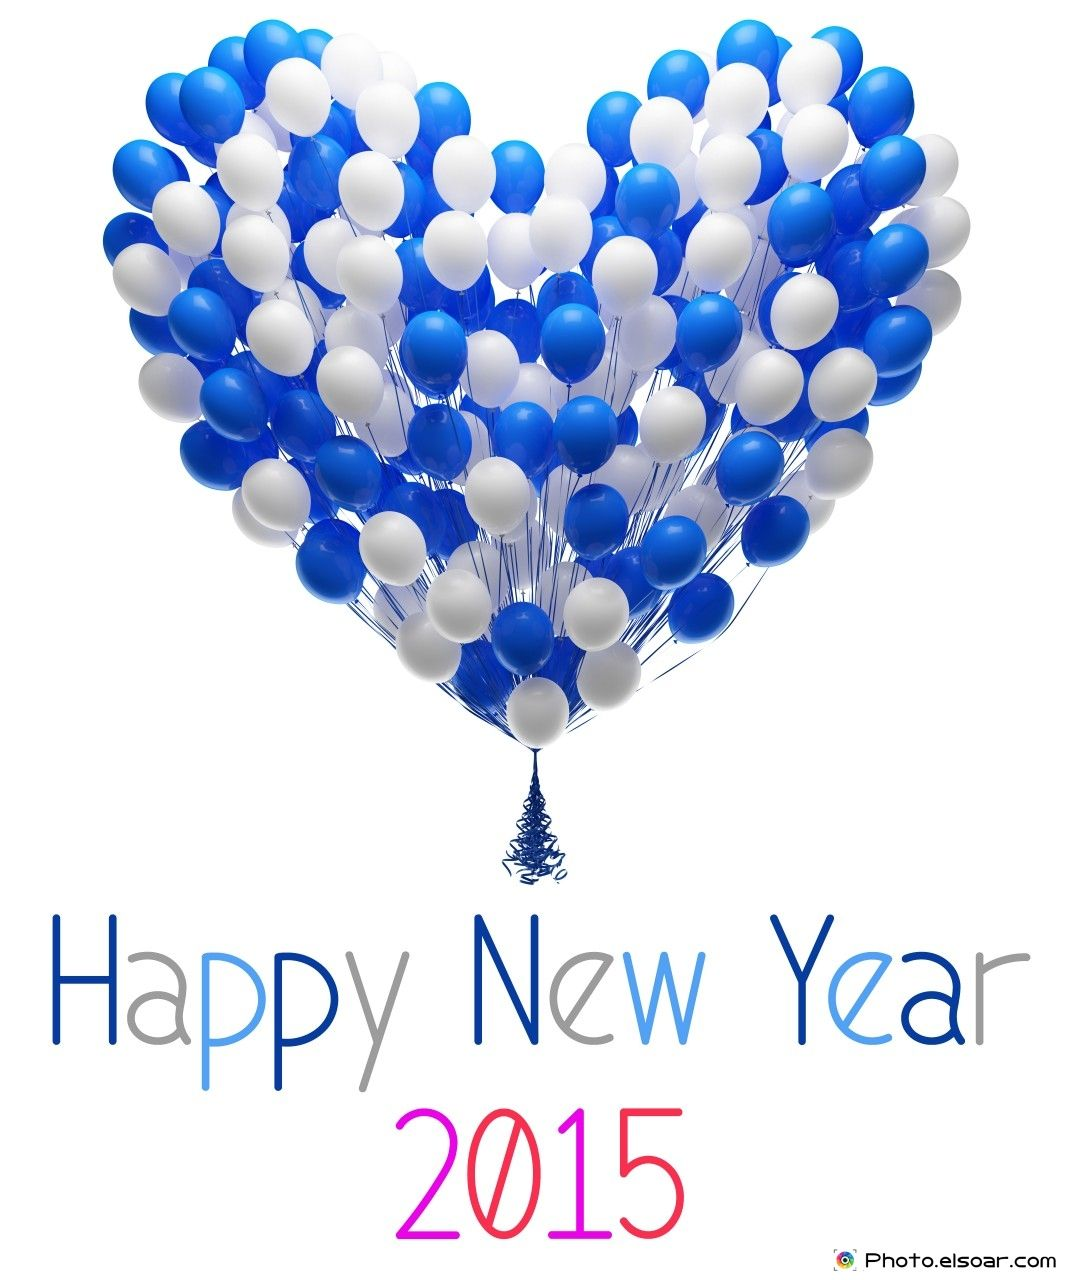 Wallpaper download new year 2015 - 224 Best Happy New Year 2015 Images On Pinterest Happy New Year Wishes Happy New Year Greetings And New Year S Quotes